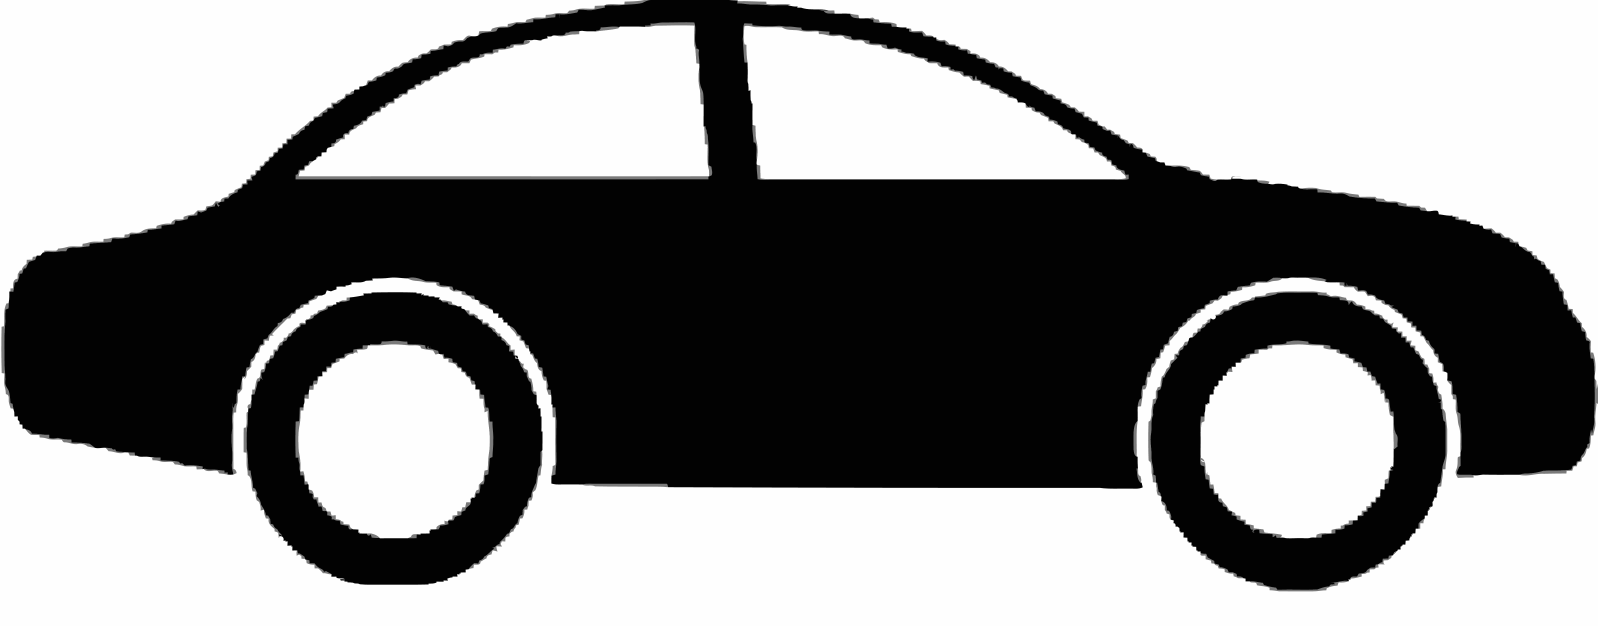 Clipart car. Silhouette at getdrawings com